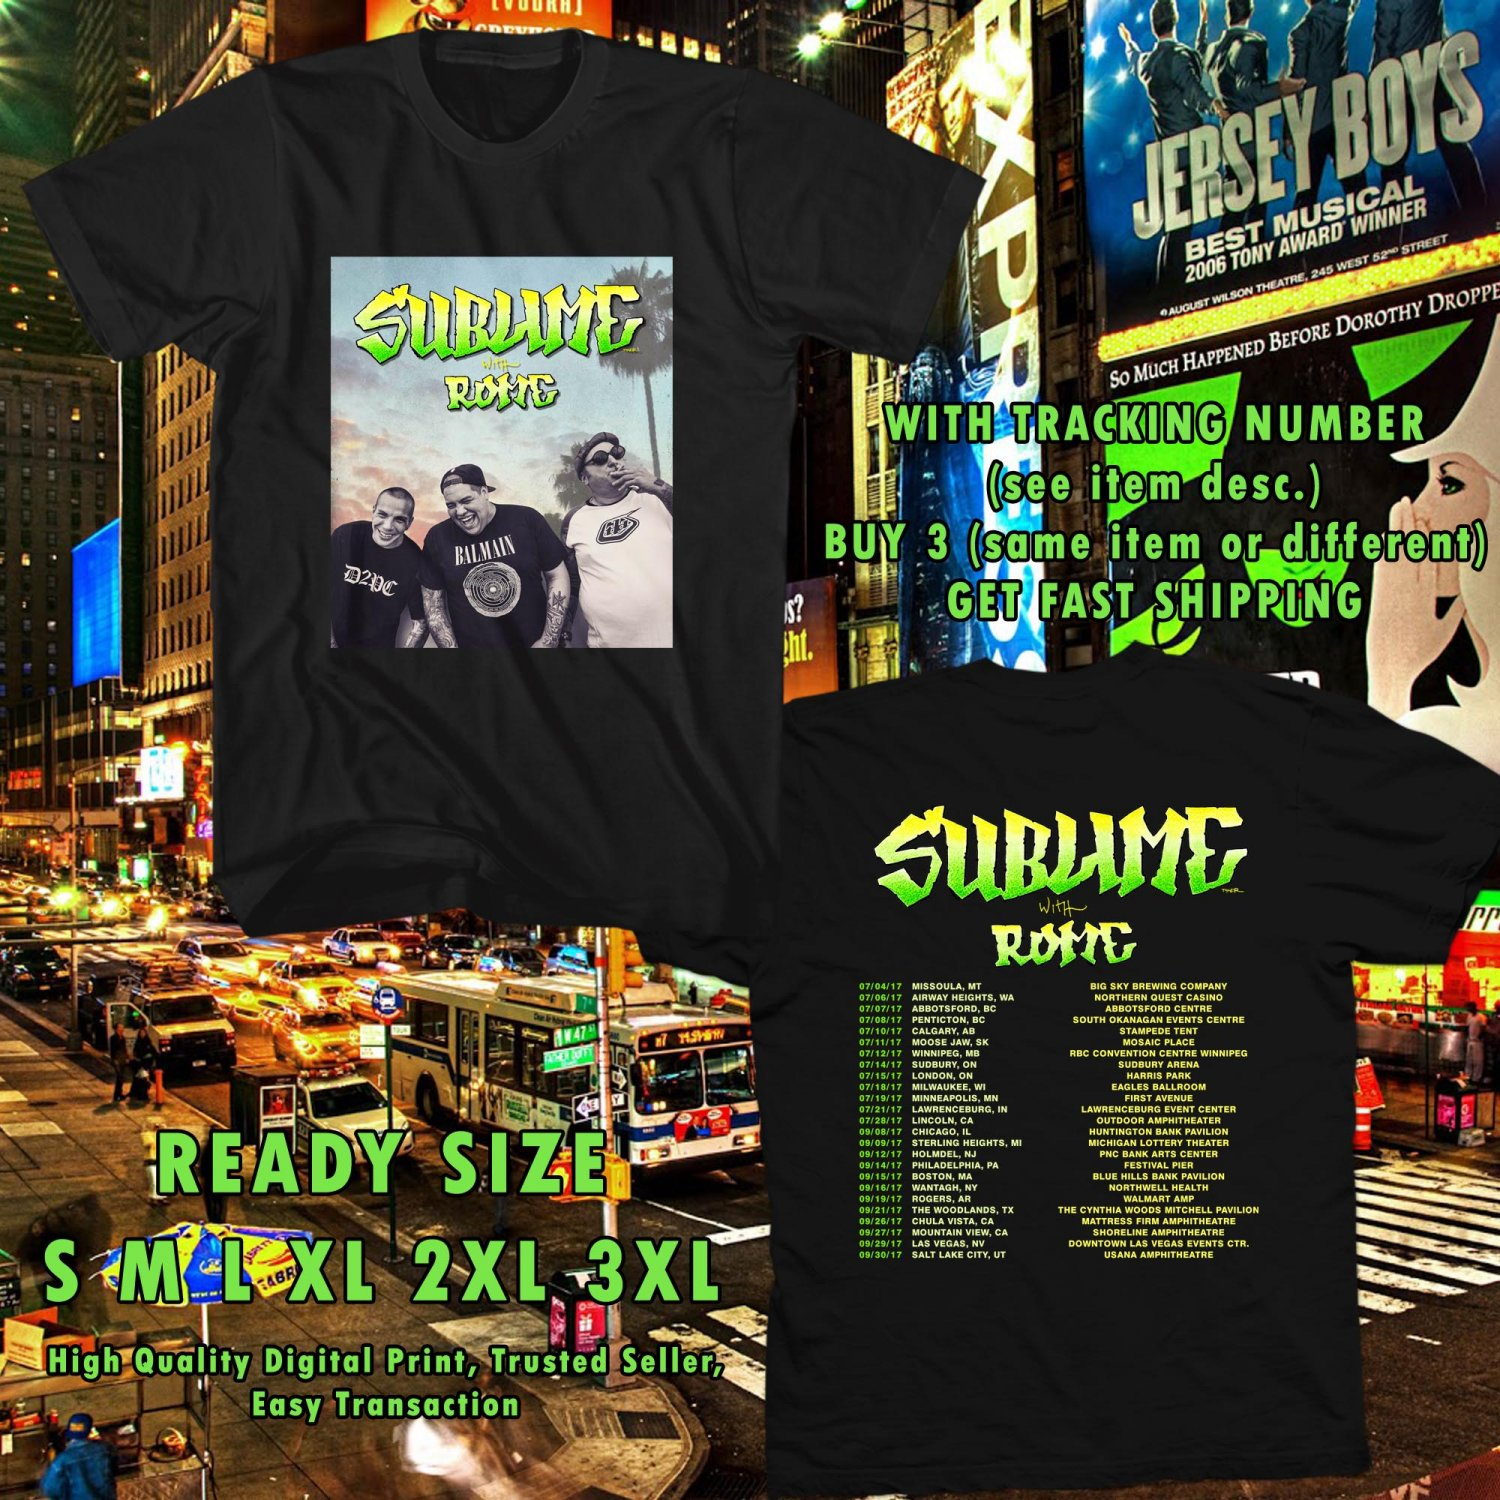 HITS SUBLIME WITH ROME N.AMERICA TOUR 2017 BLACK TEE'S 2SIDE MAN WOMEN ASTR 944